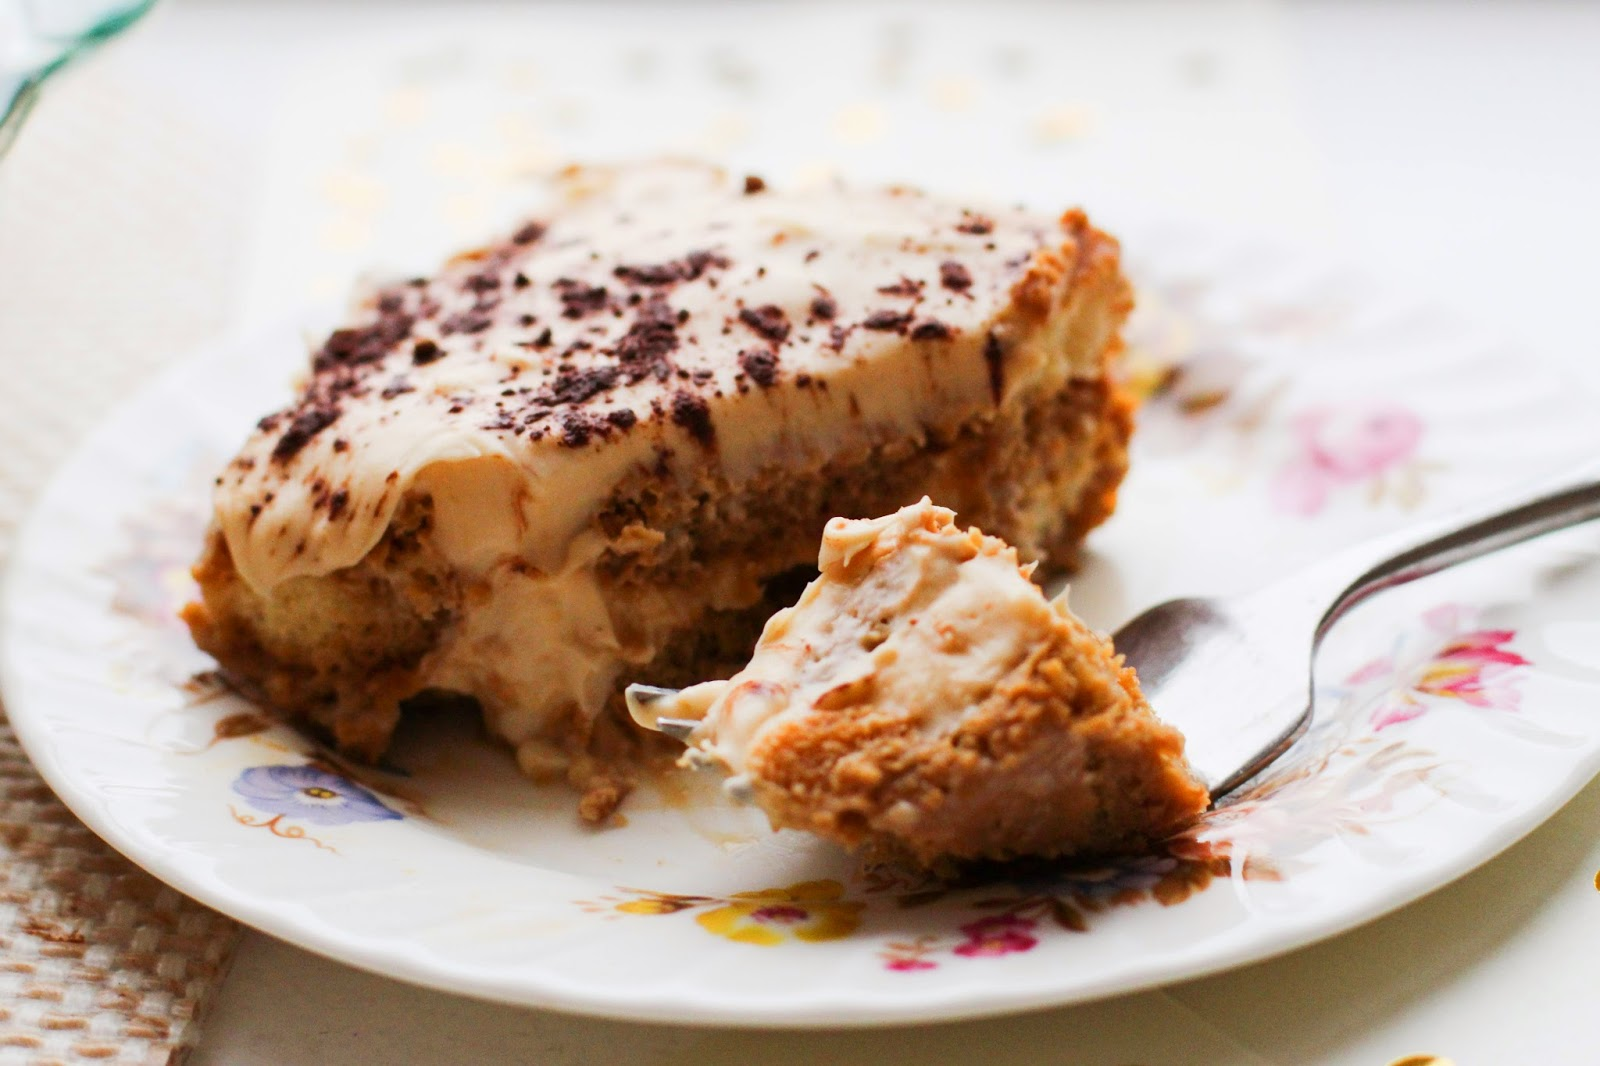 Lake Shore Lady: Irish Cream Tiramisu